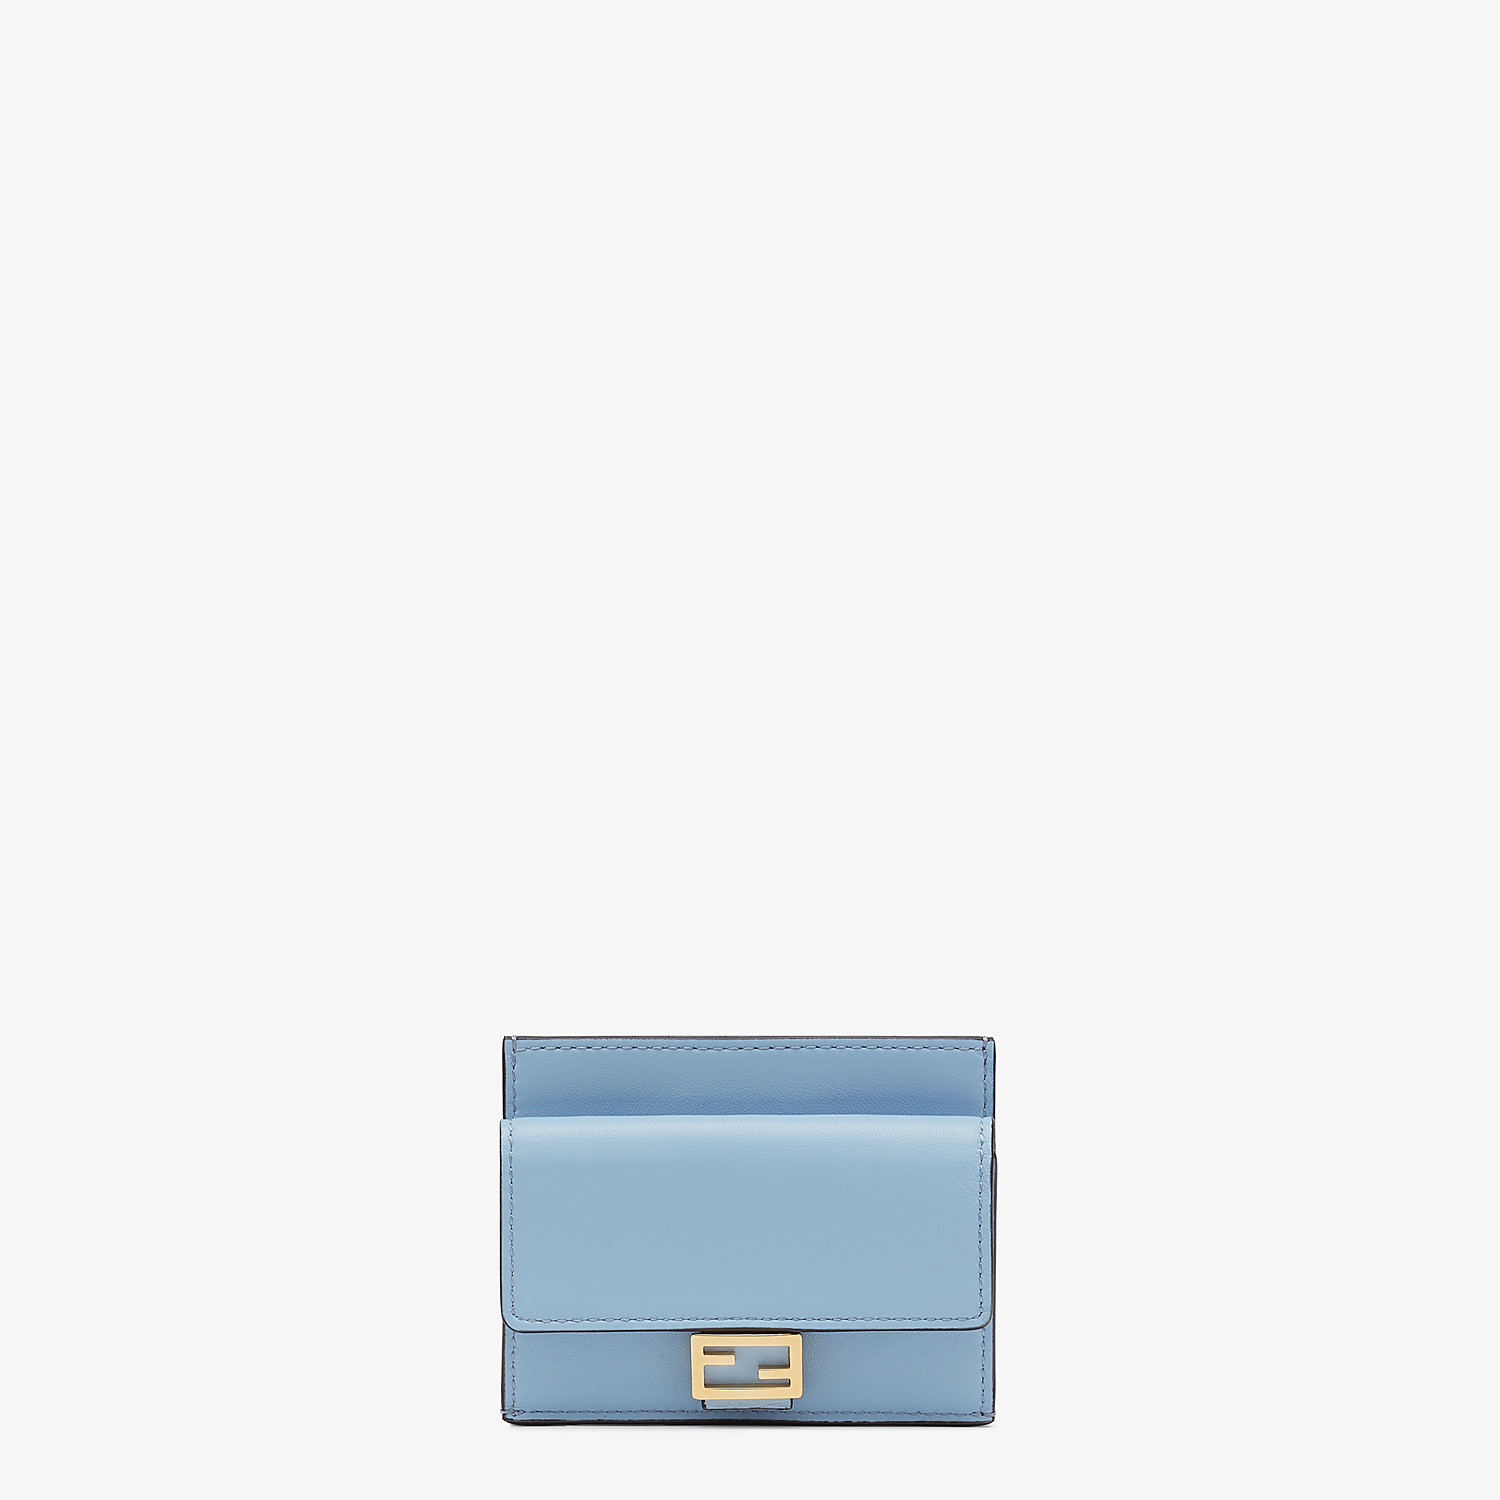 FENDI CARD HOLDER - Cardholder in light blue nappa leather - view 1 detail